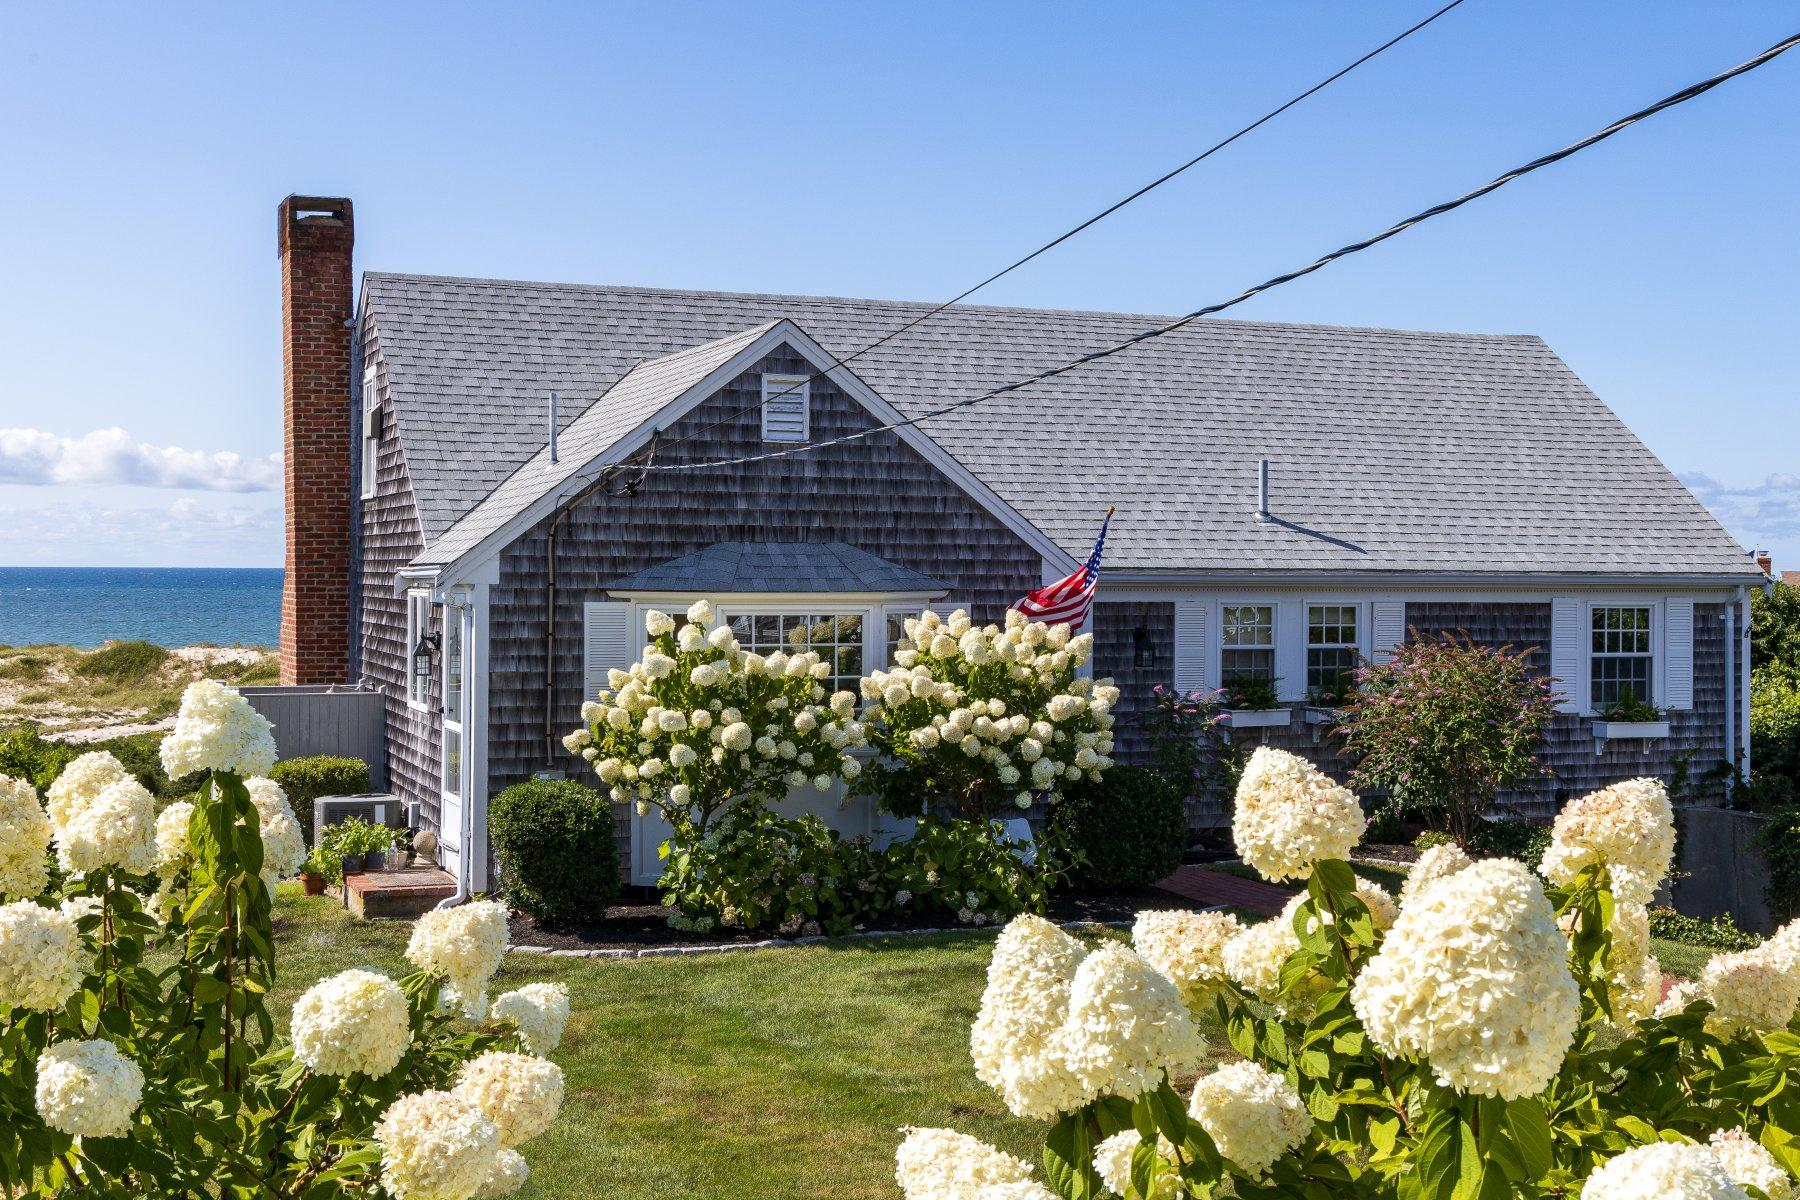 Single Family Homes for Sale at 41 Paul Street, Dennis, MA 41 Paul Street Dennis, Massachusetts 02638 United States